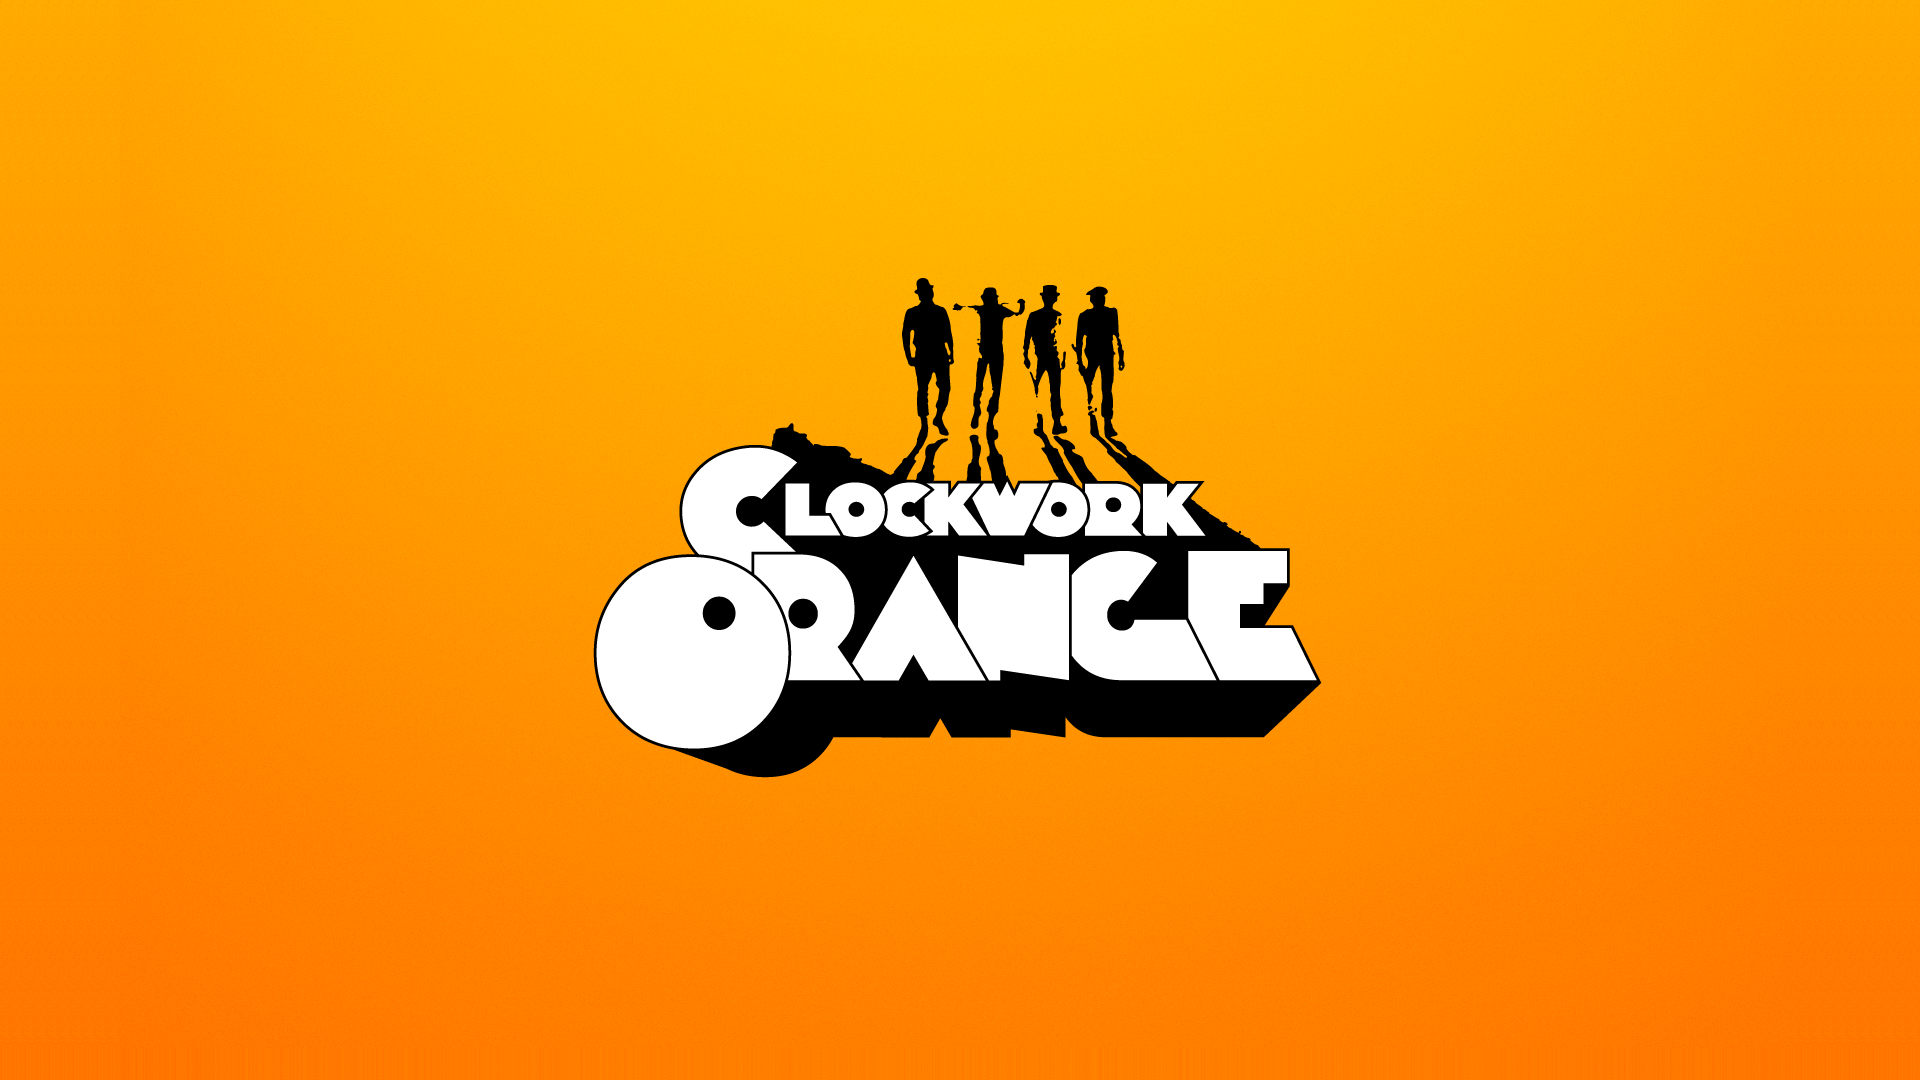 clock work orange We see this side effect in a clockwork orange in that the prison experimenters chose the series of violent movies that were silent.